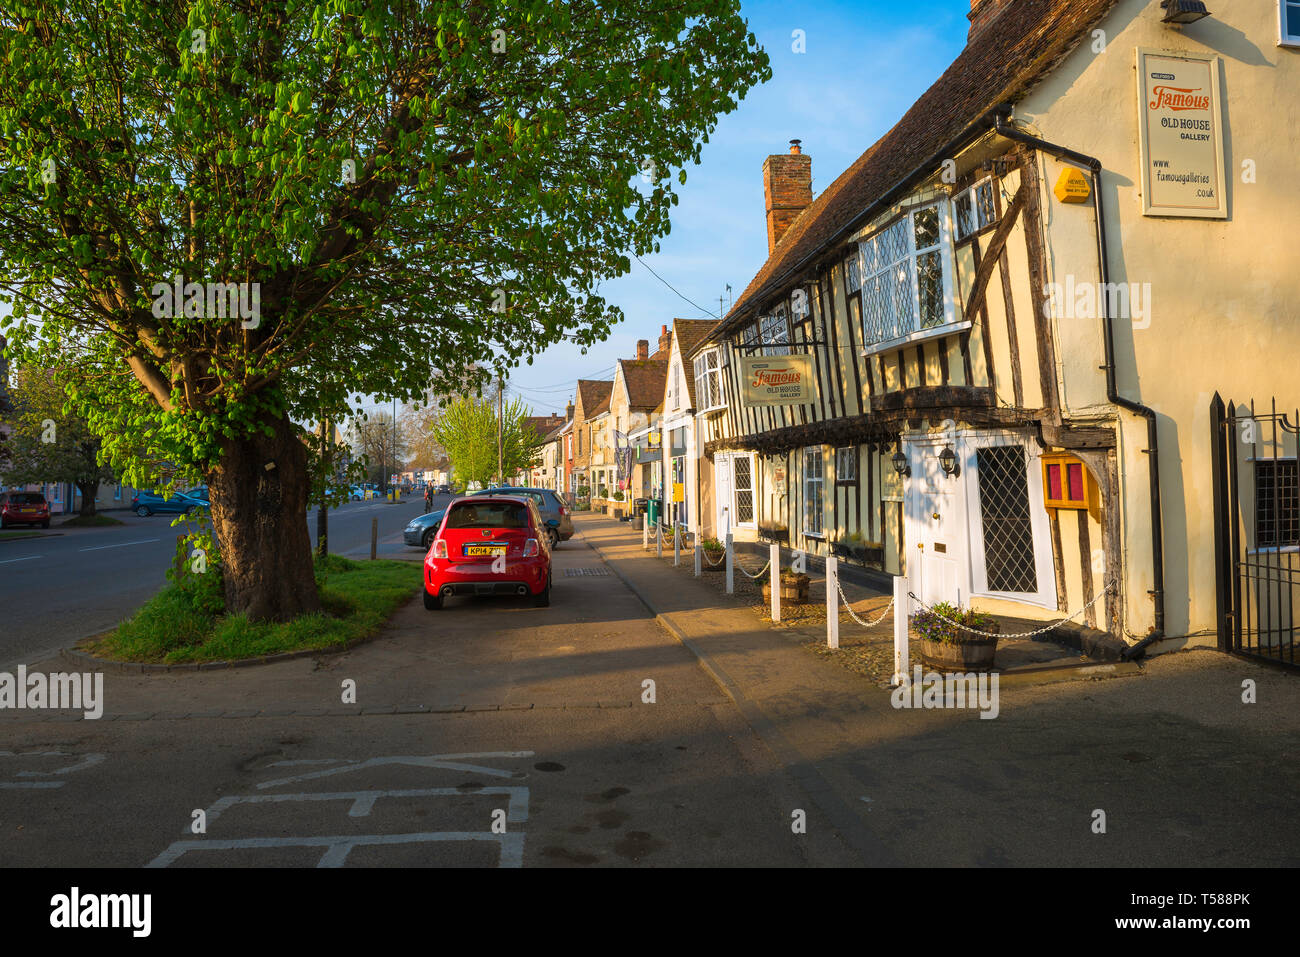 Long Melford Suffolk UK, view of shops and buildings in Hall Street - the main street running through Long Melford village, Suffolk, England, UK - Stock Image